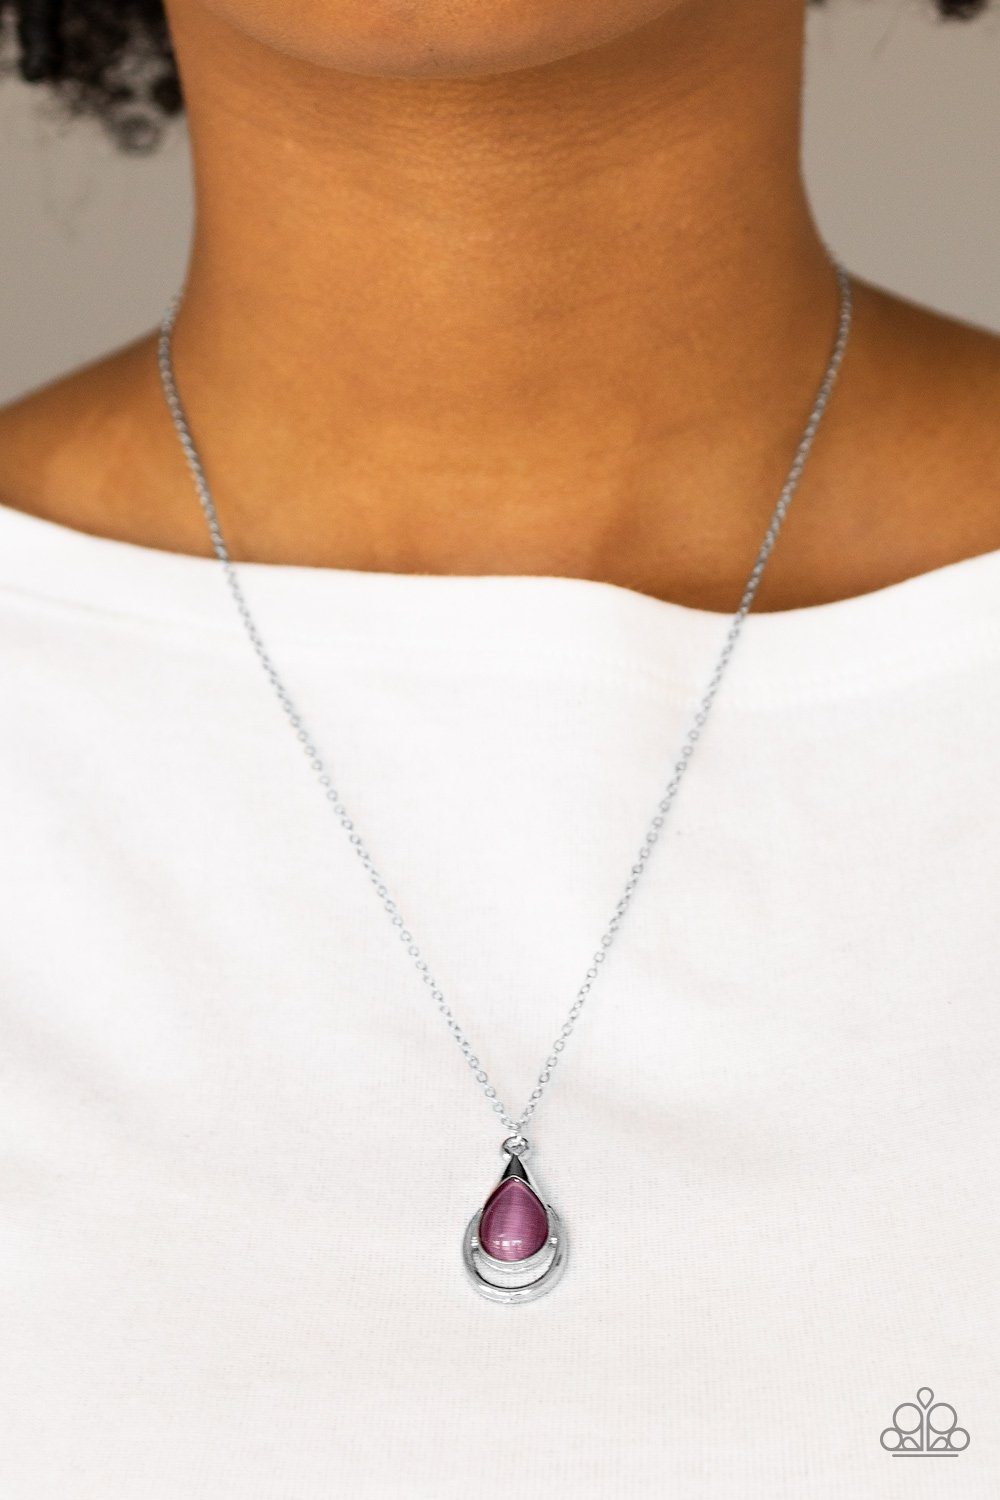 Just Drop It - purple - Paparazzi necklace